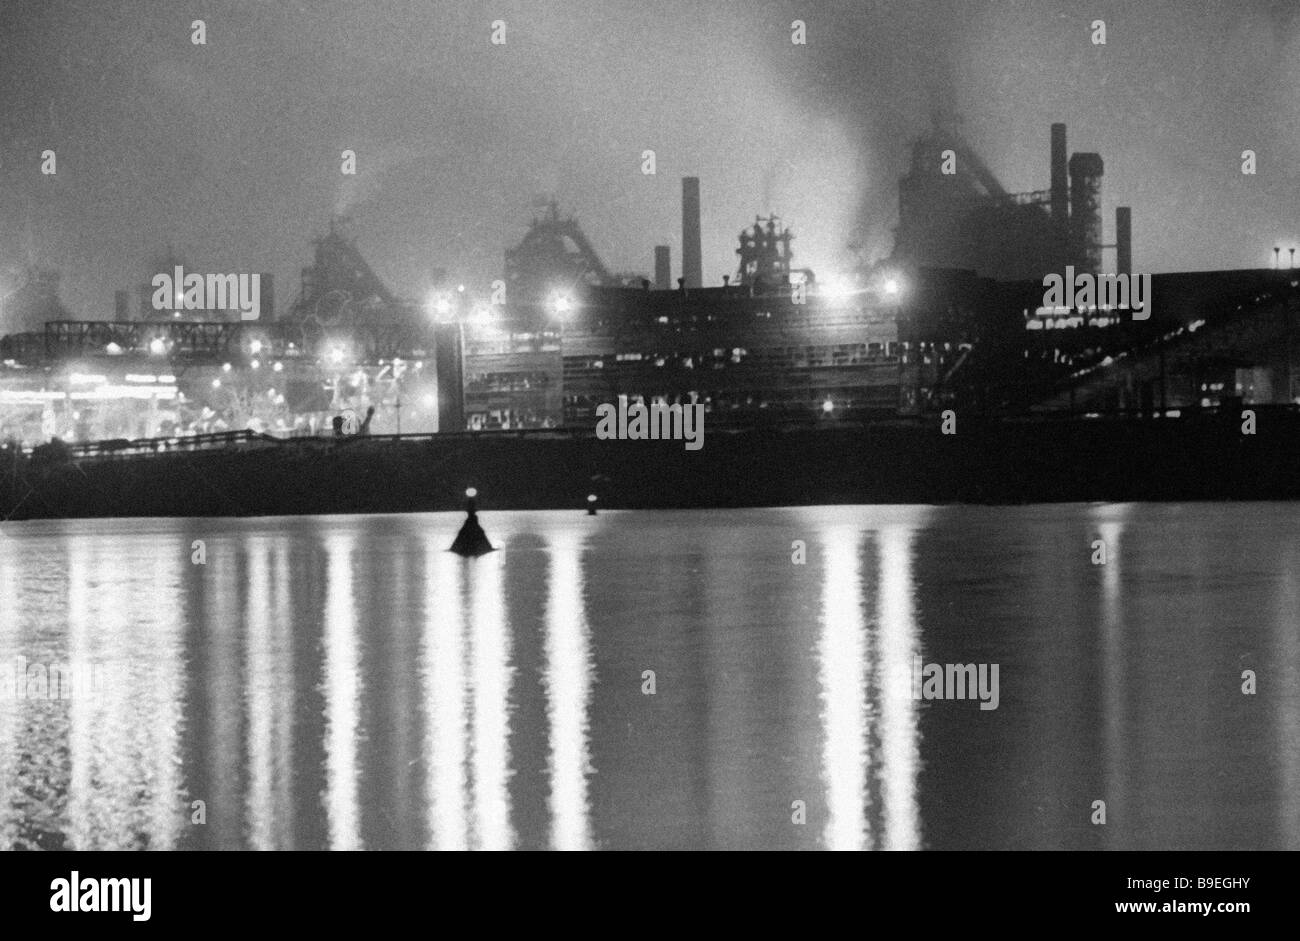 Dneprodzerzhinsk iron and steel works in the evening - Stock Image